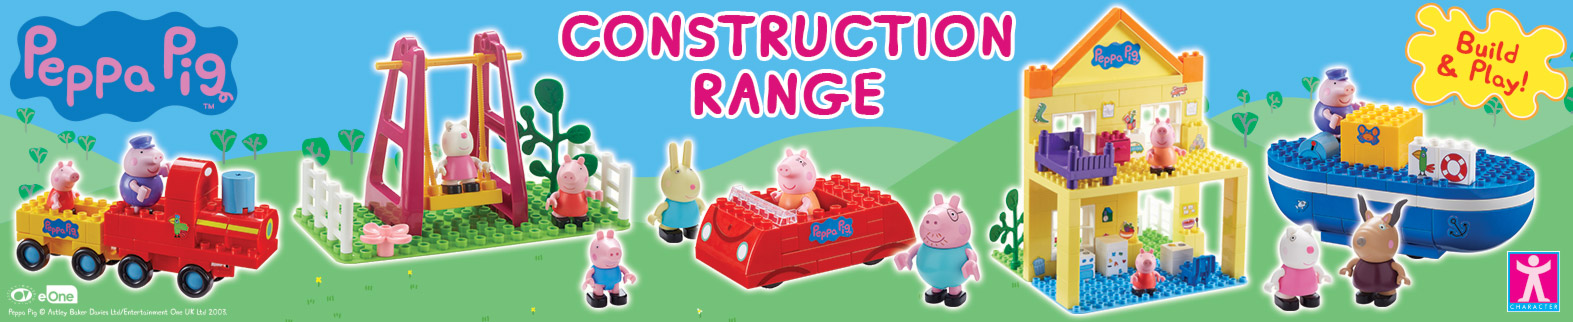 Peppa Pig Construction Toy Range